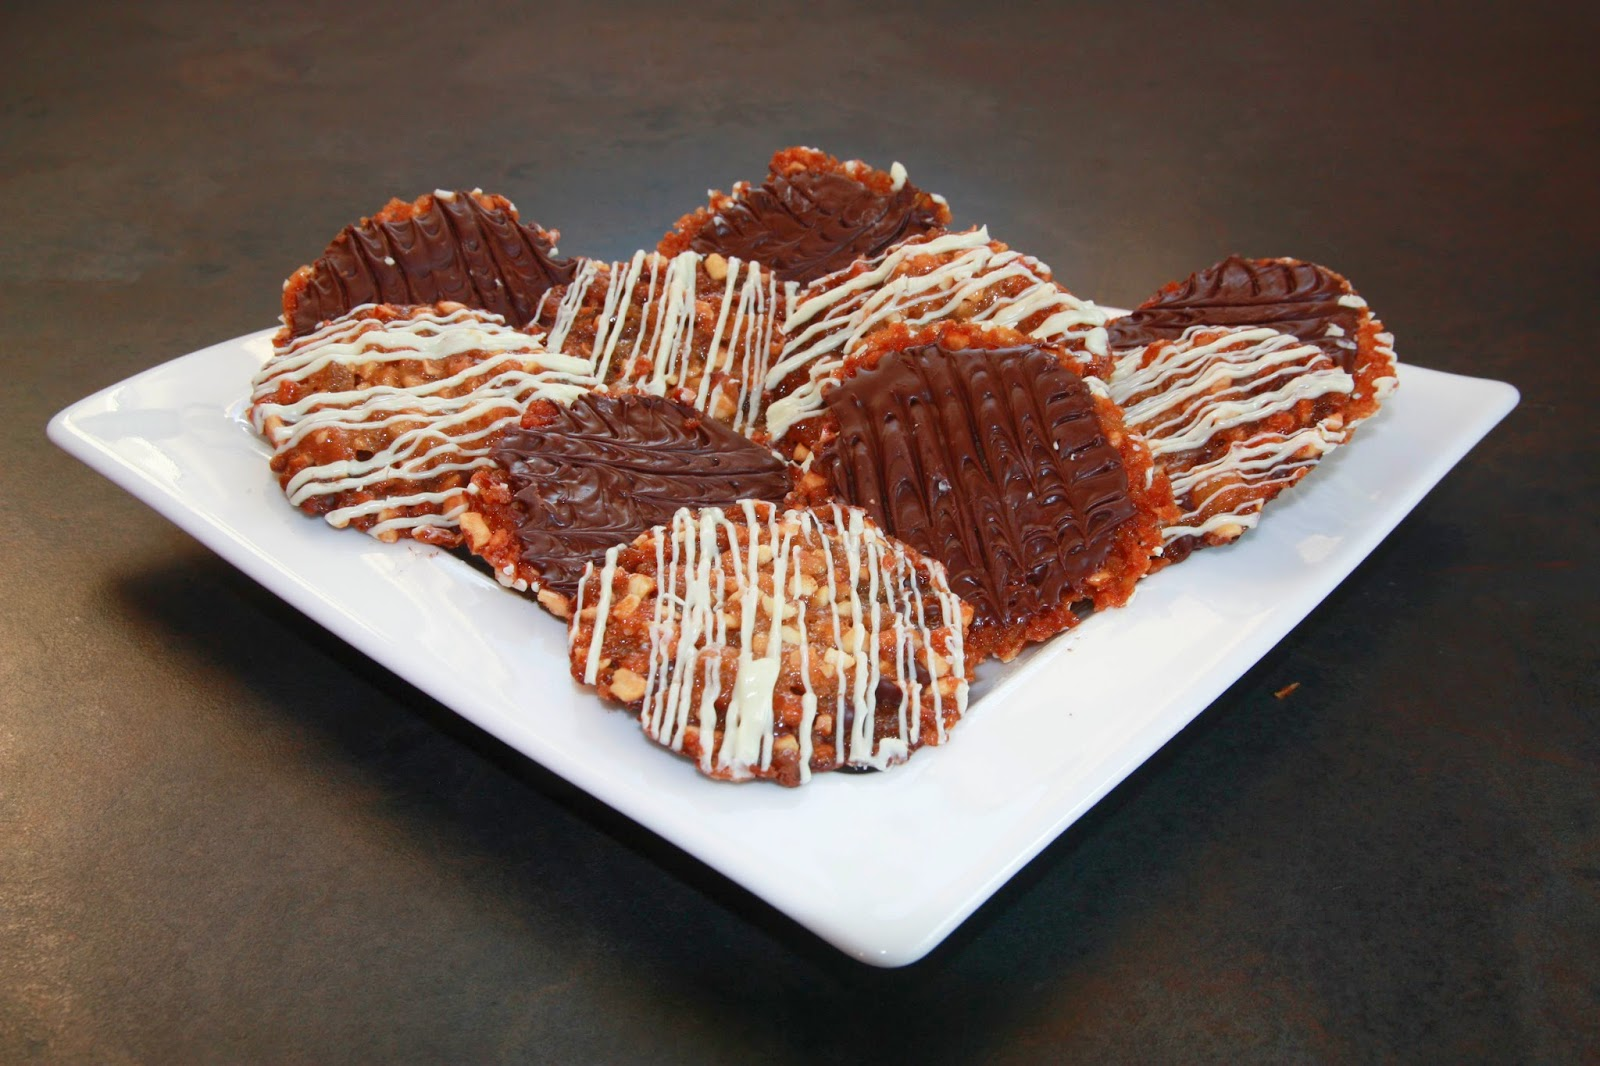 chocolate covered florentines on a plate